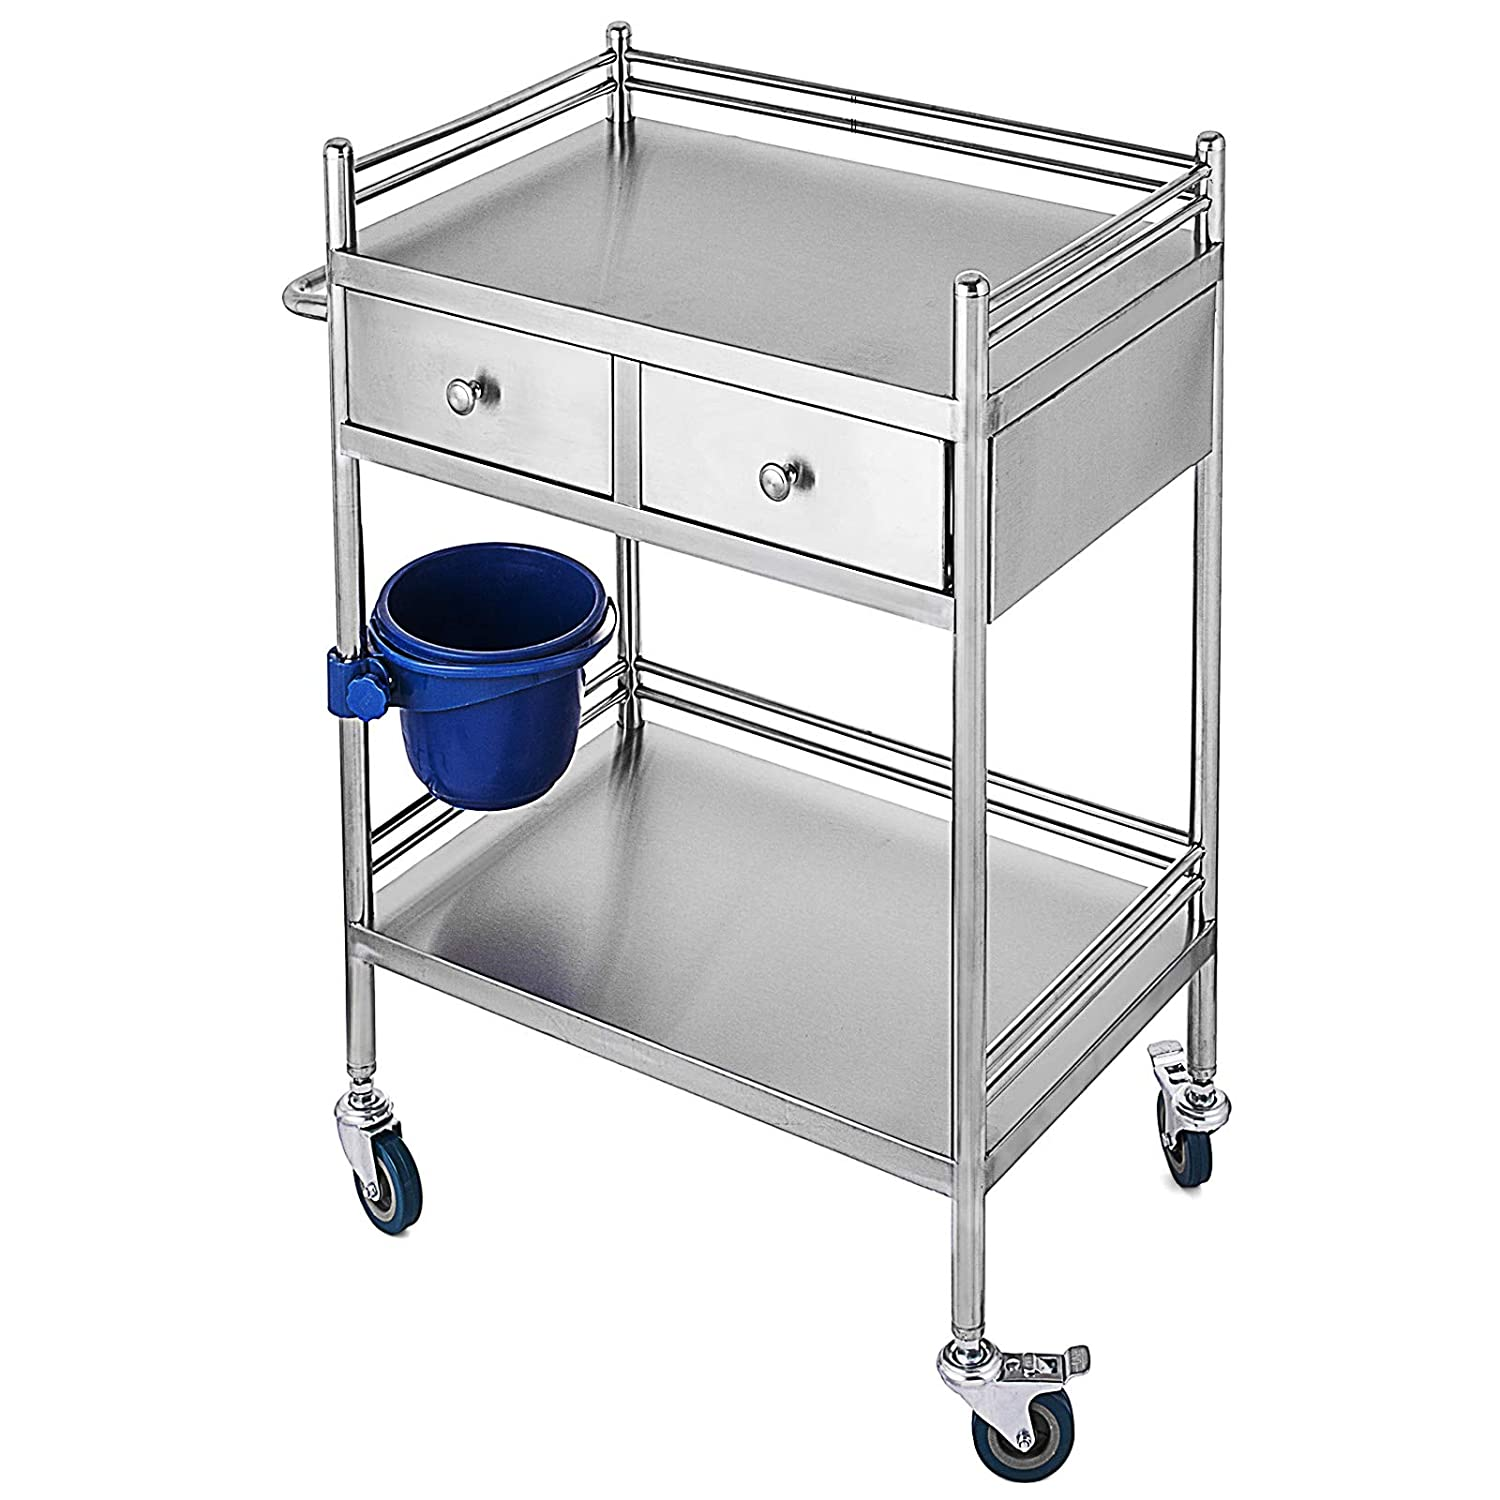 VEVOR Medical Dental Lab Serving Cart,Two-Story lab cart,with Drawers for Medical Equipment and lab Equipment,Use Grade I Stainless Steel